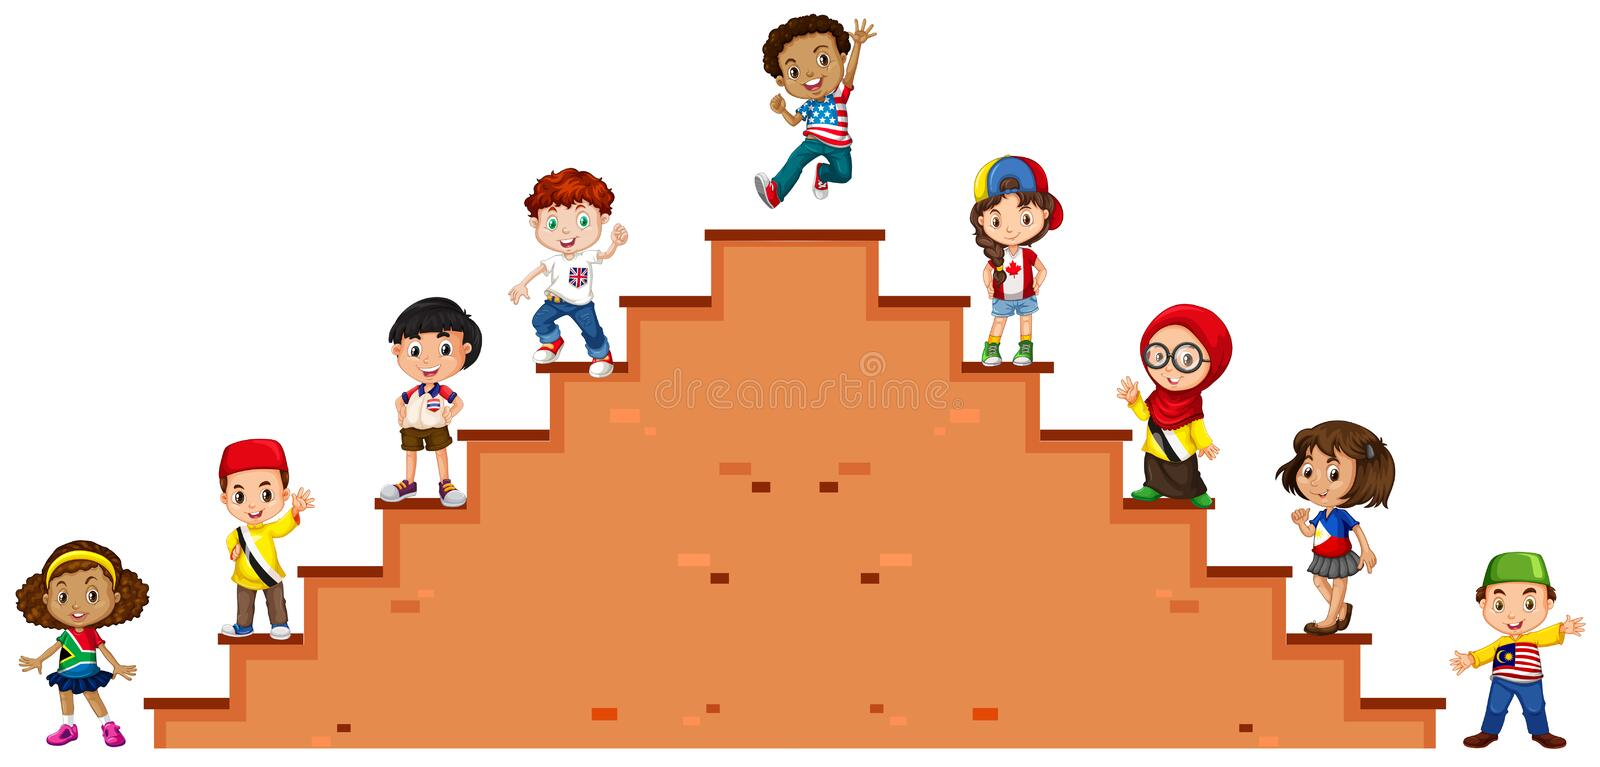 Children standing on the stairs vector illustration